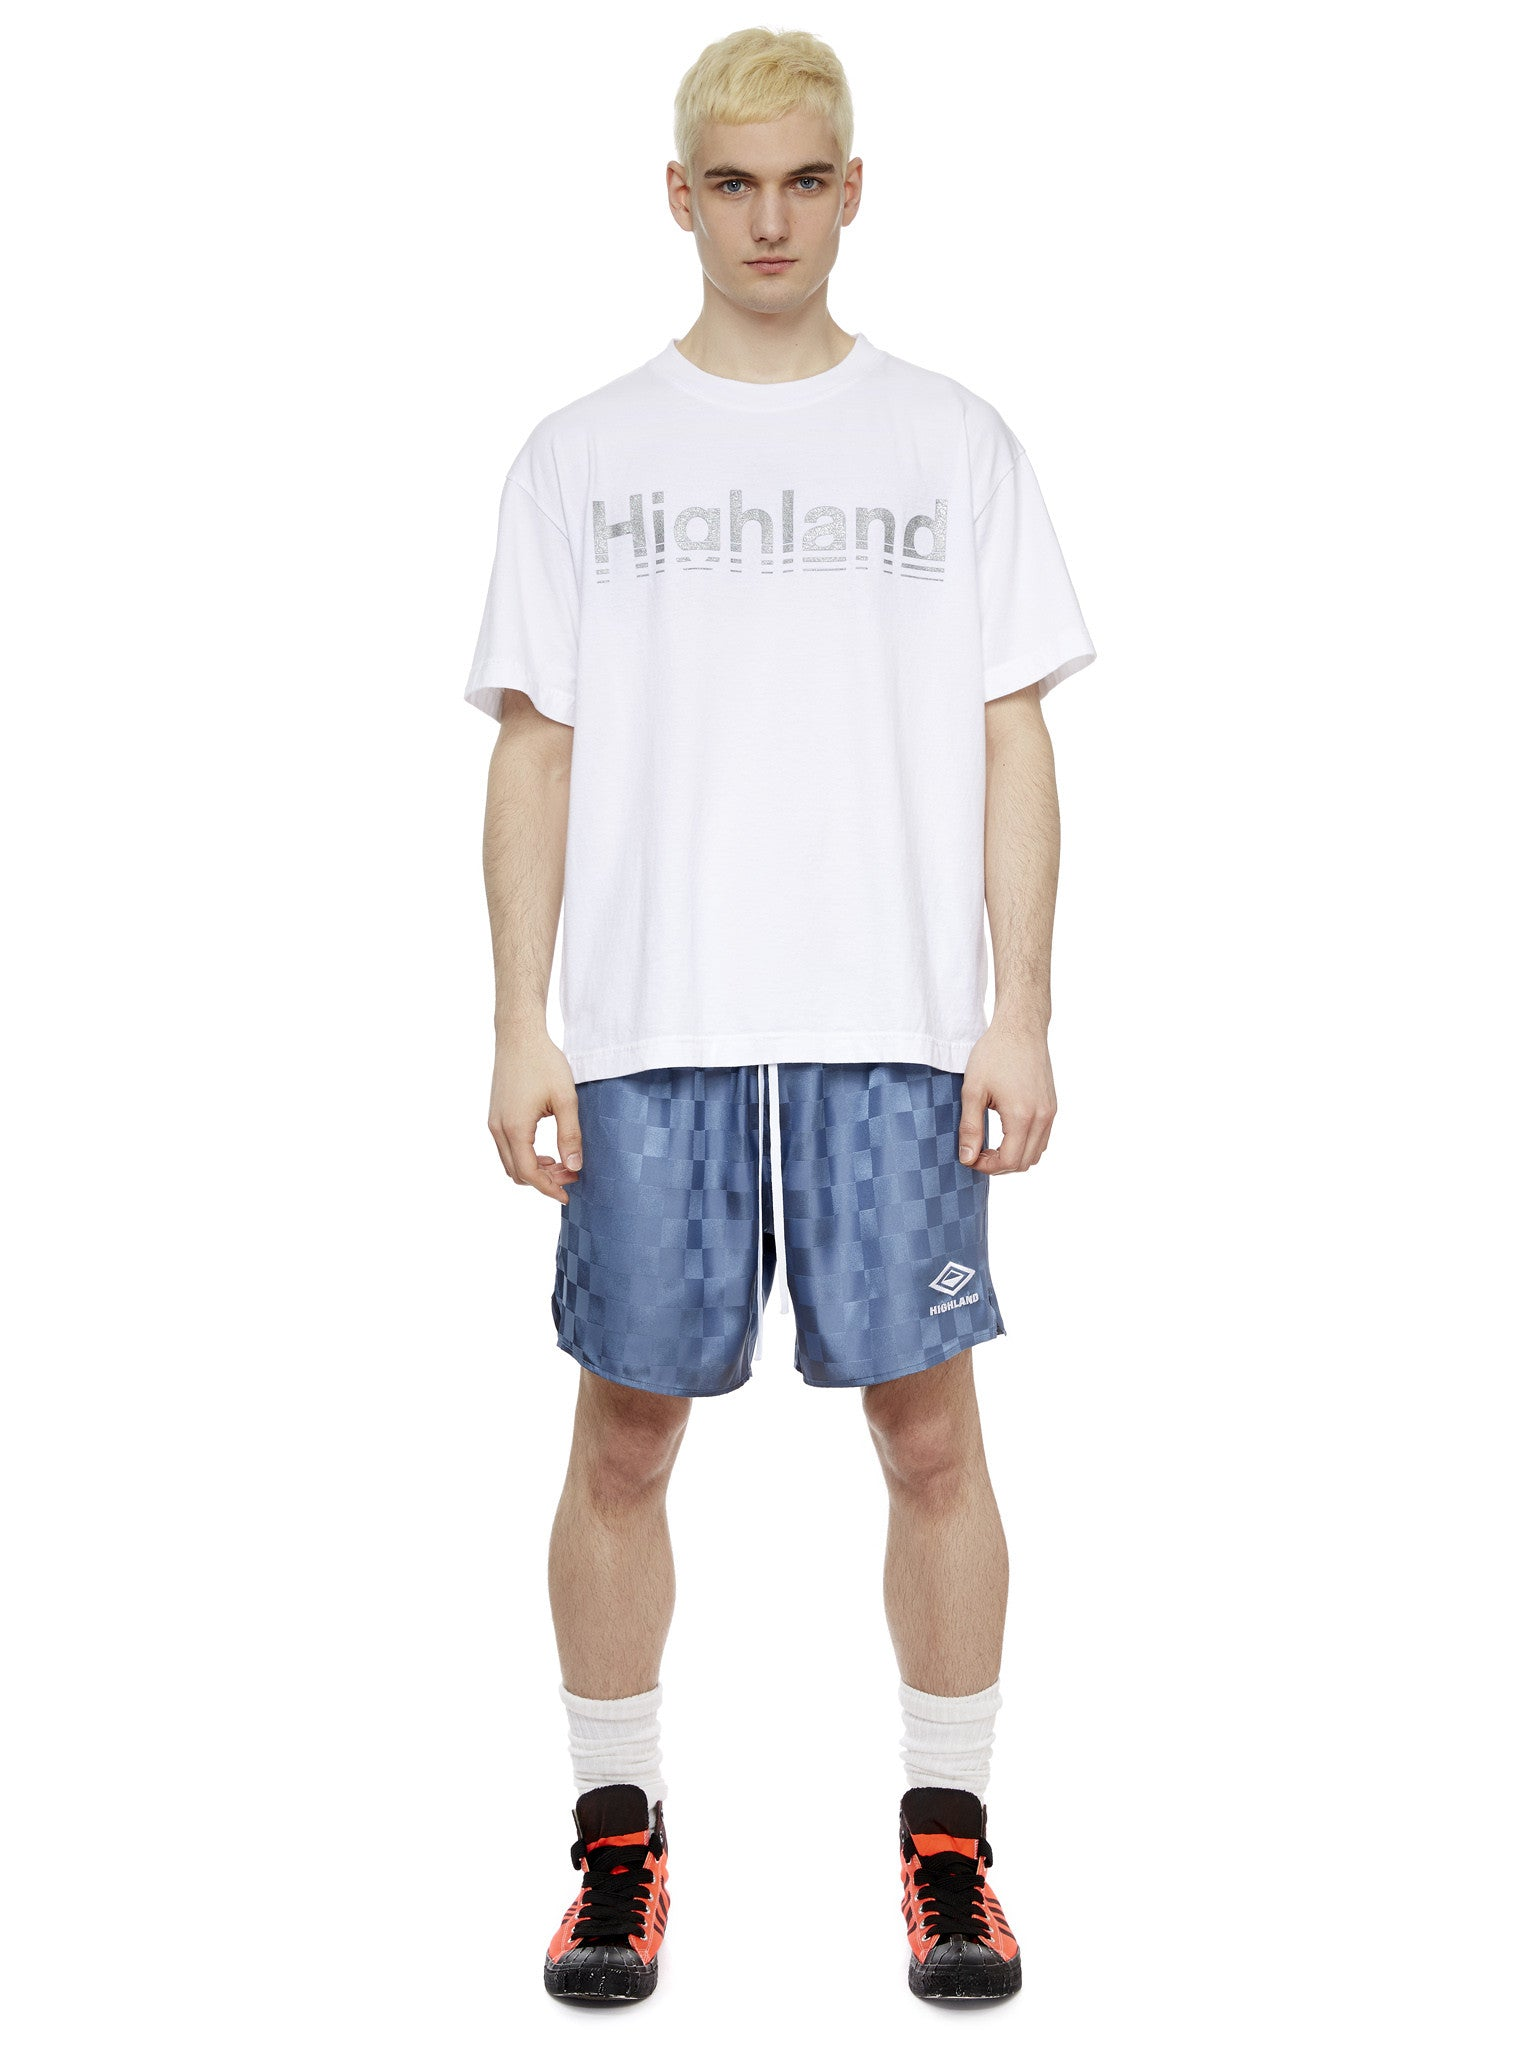 S/S Logo T-Shirt in White/Silver